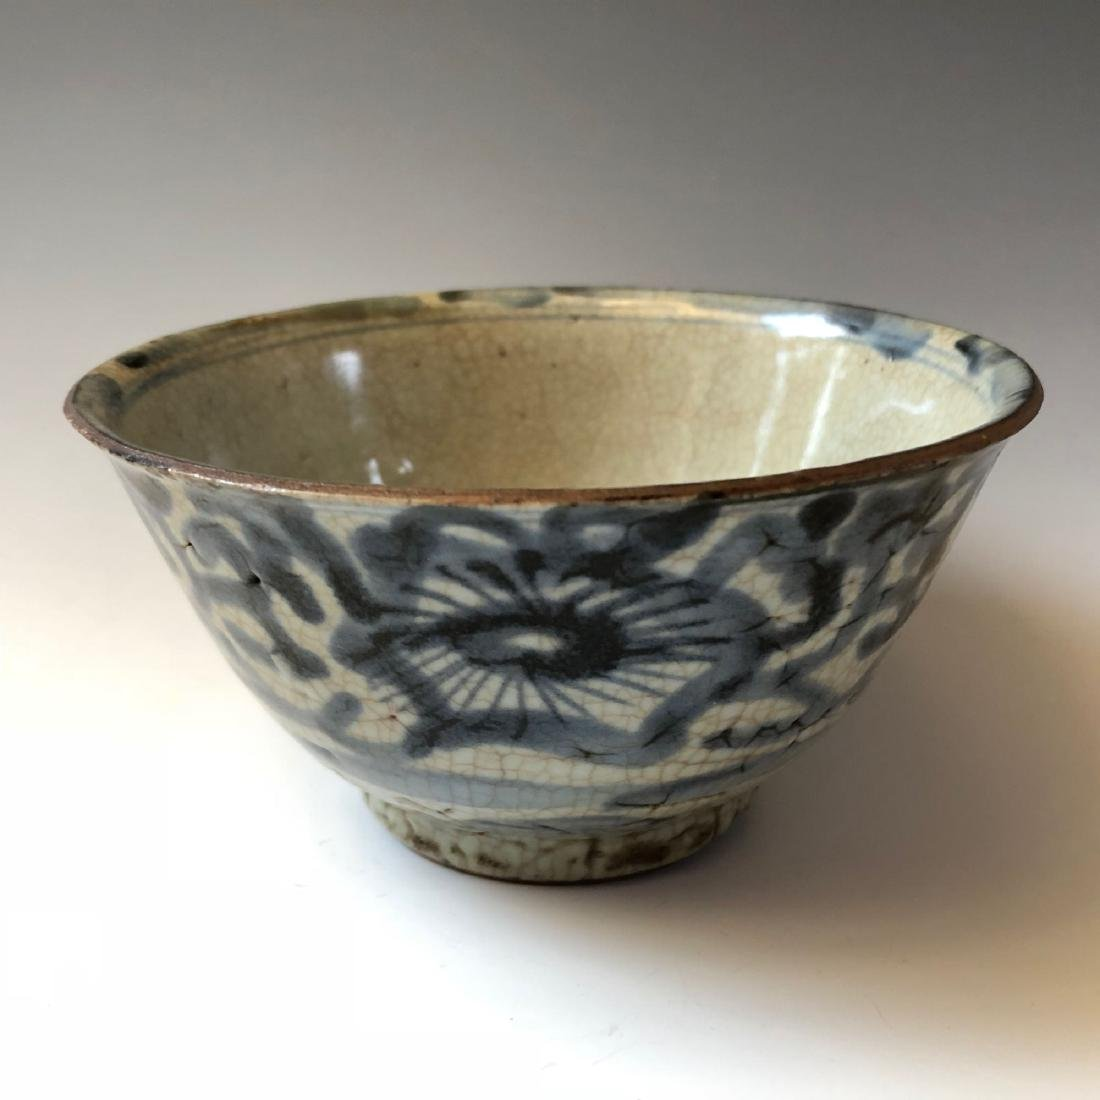 CHINESE ANTIQUE BLUE AND WHITE BOWL, MING DYNASTY